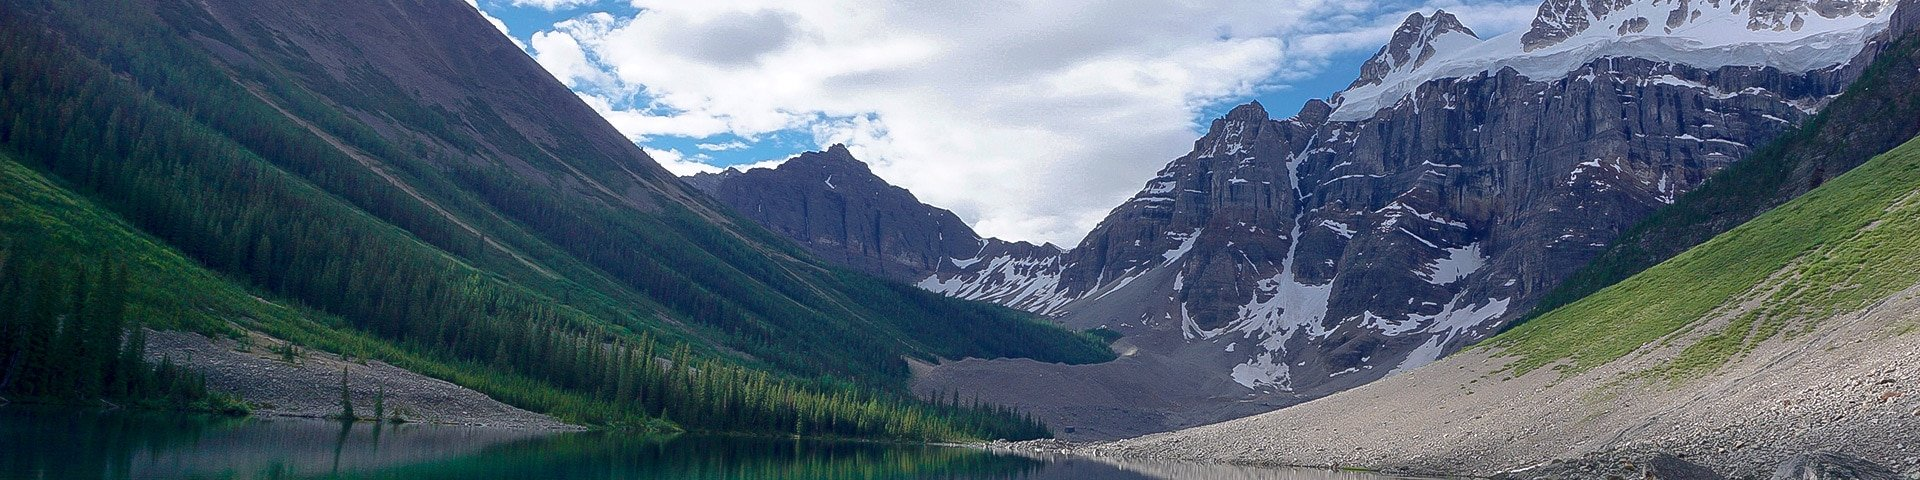 Panoramic views from the Consolation Lakes hike near Lake Louise, Banff National Park